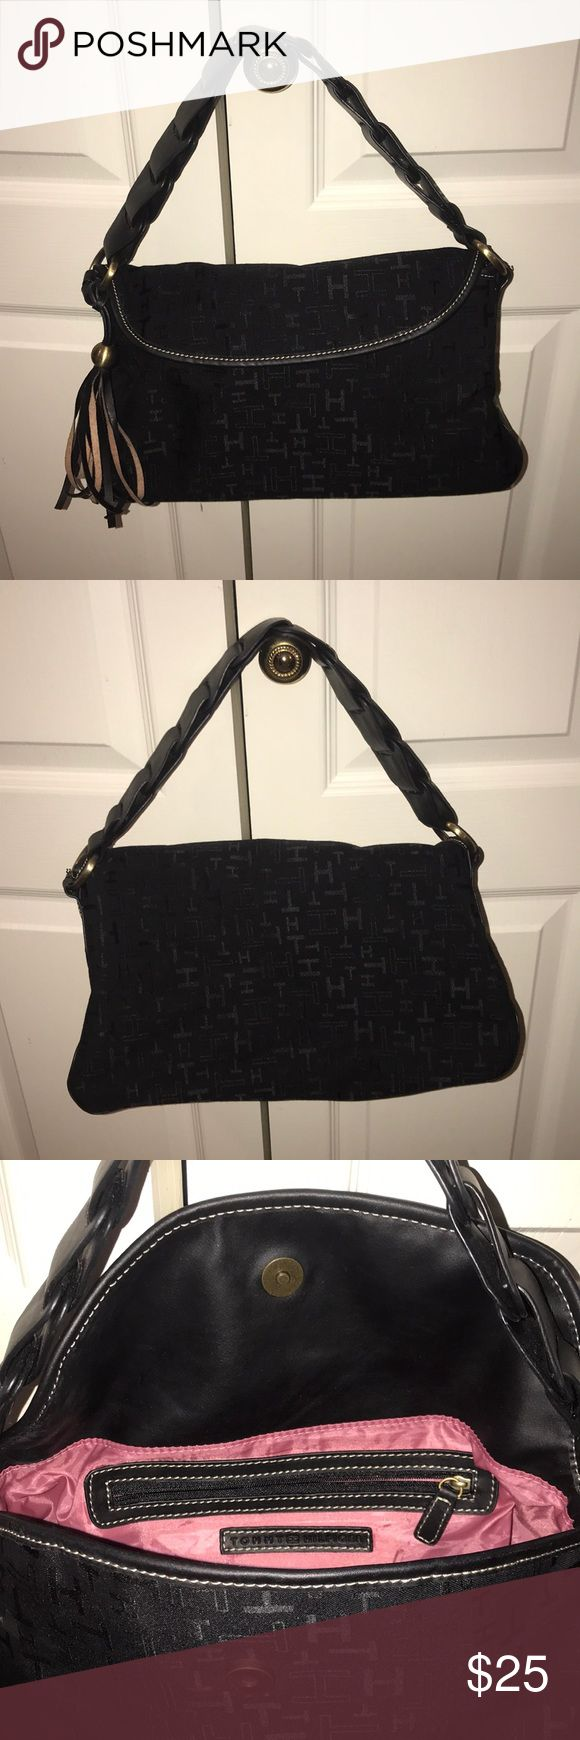 Tommy Hilfiger Purse Great condition.  Nice braided shoulder strap. Small ink stain on inside. Sale price or best offer!! Tommy Hilfiger Bags Shoulder Bags